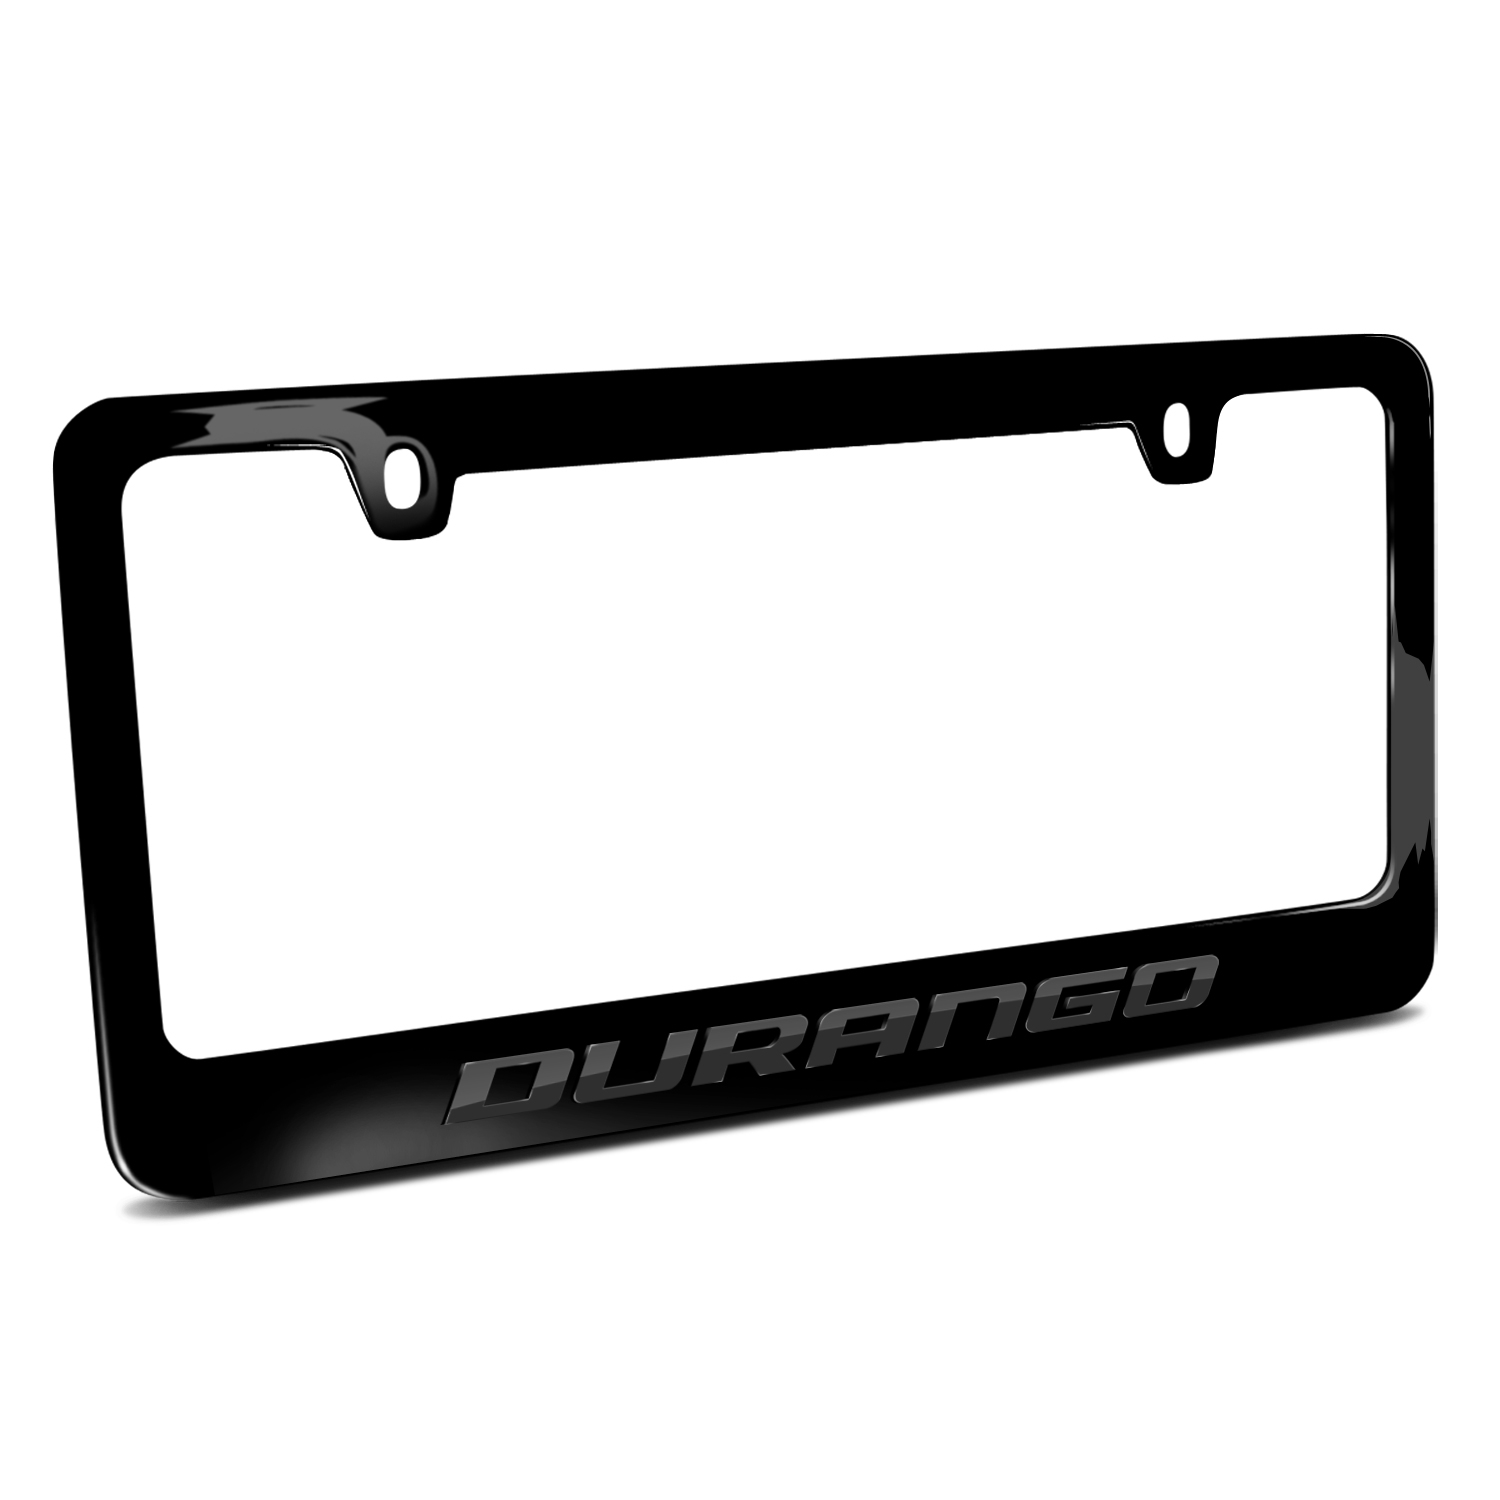 Dodge Durango in 3D Black on Black Metal License Plate Frame